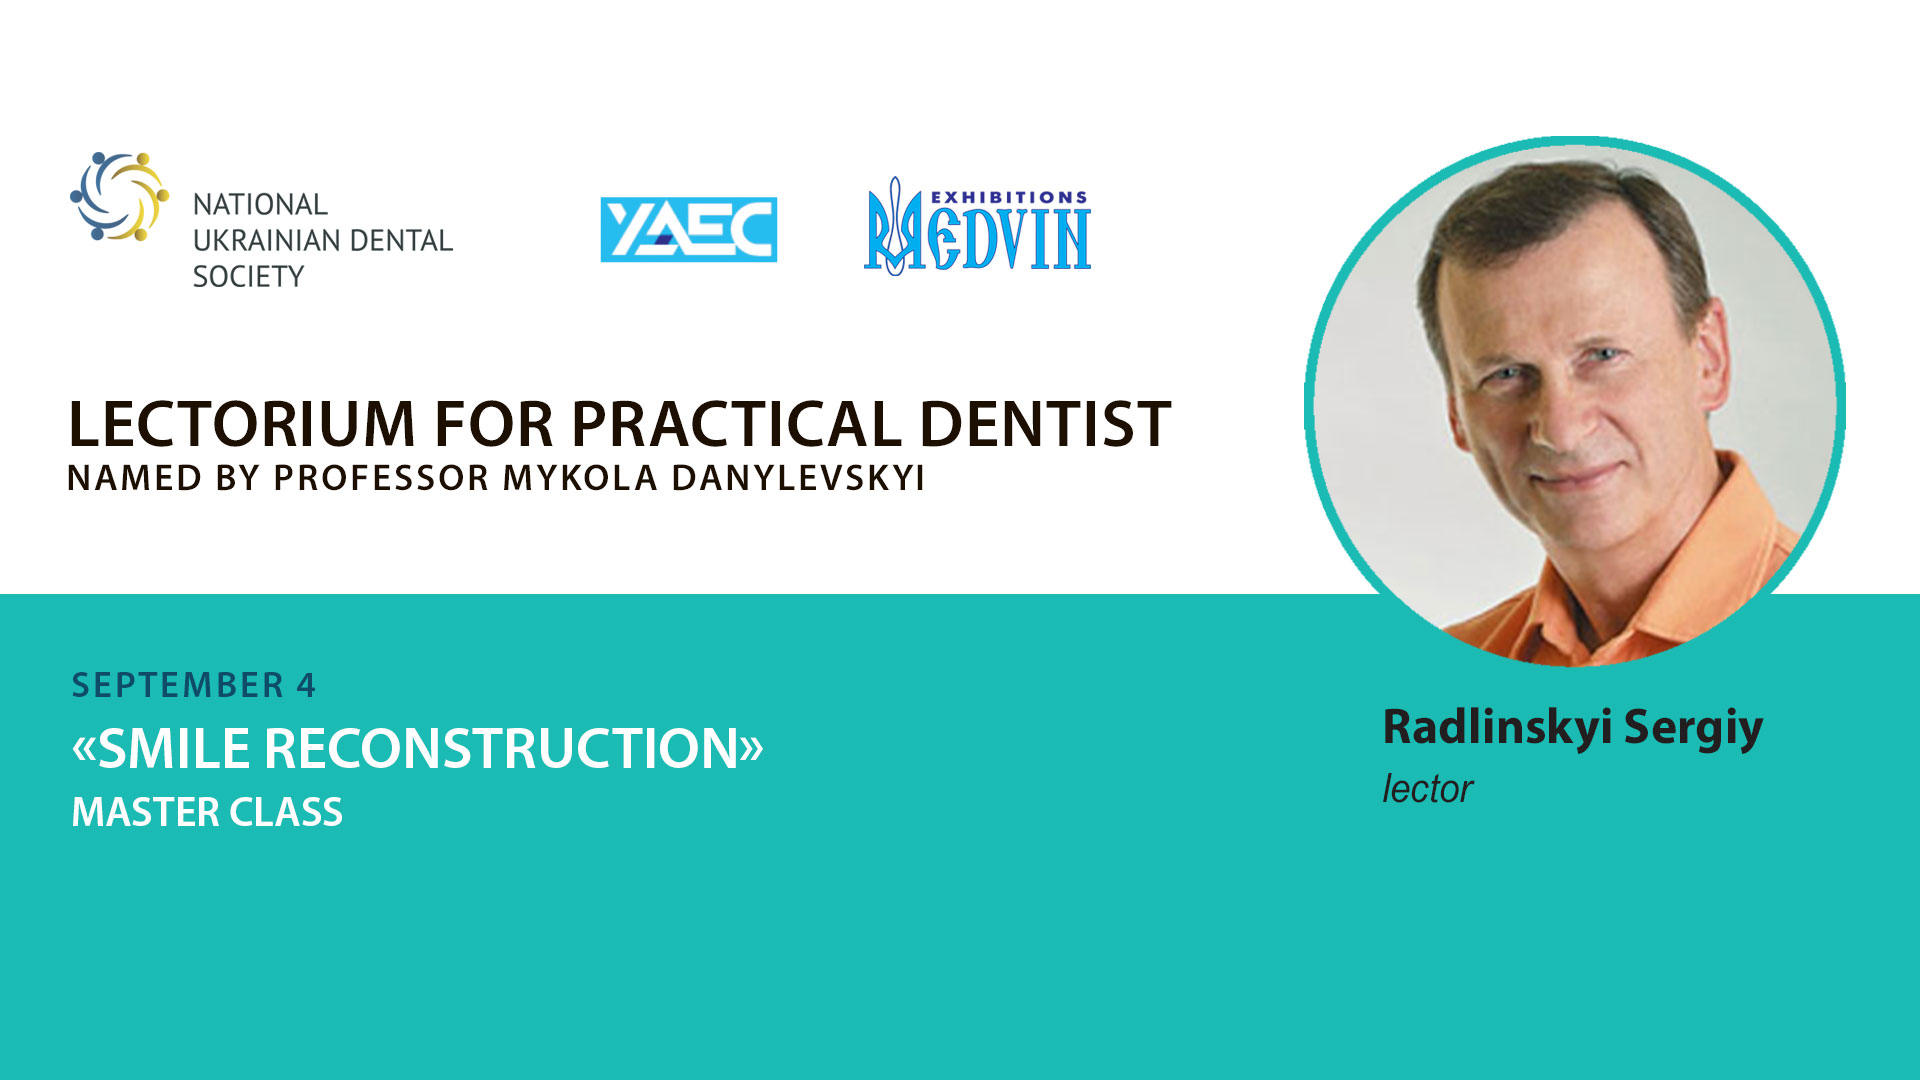 Reconstruction of a smile line - restoration by calculation. Master class by Sergei Radlinsky and Olga Ponomarenko